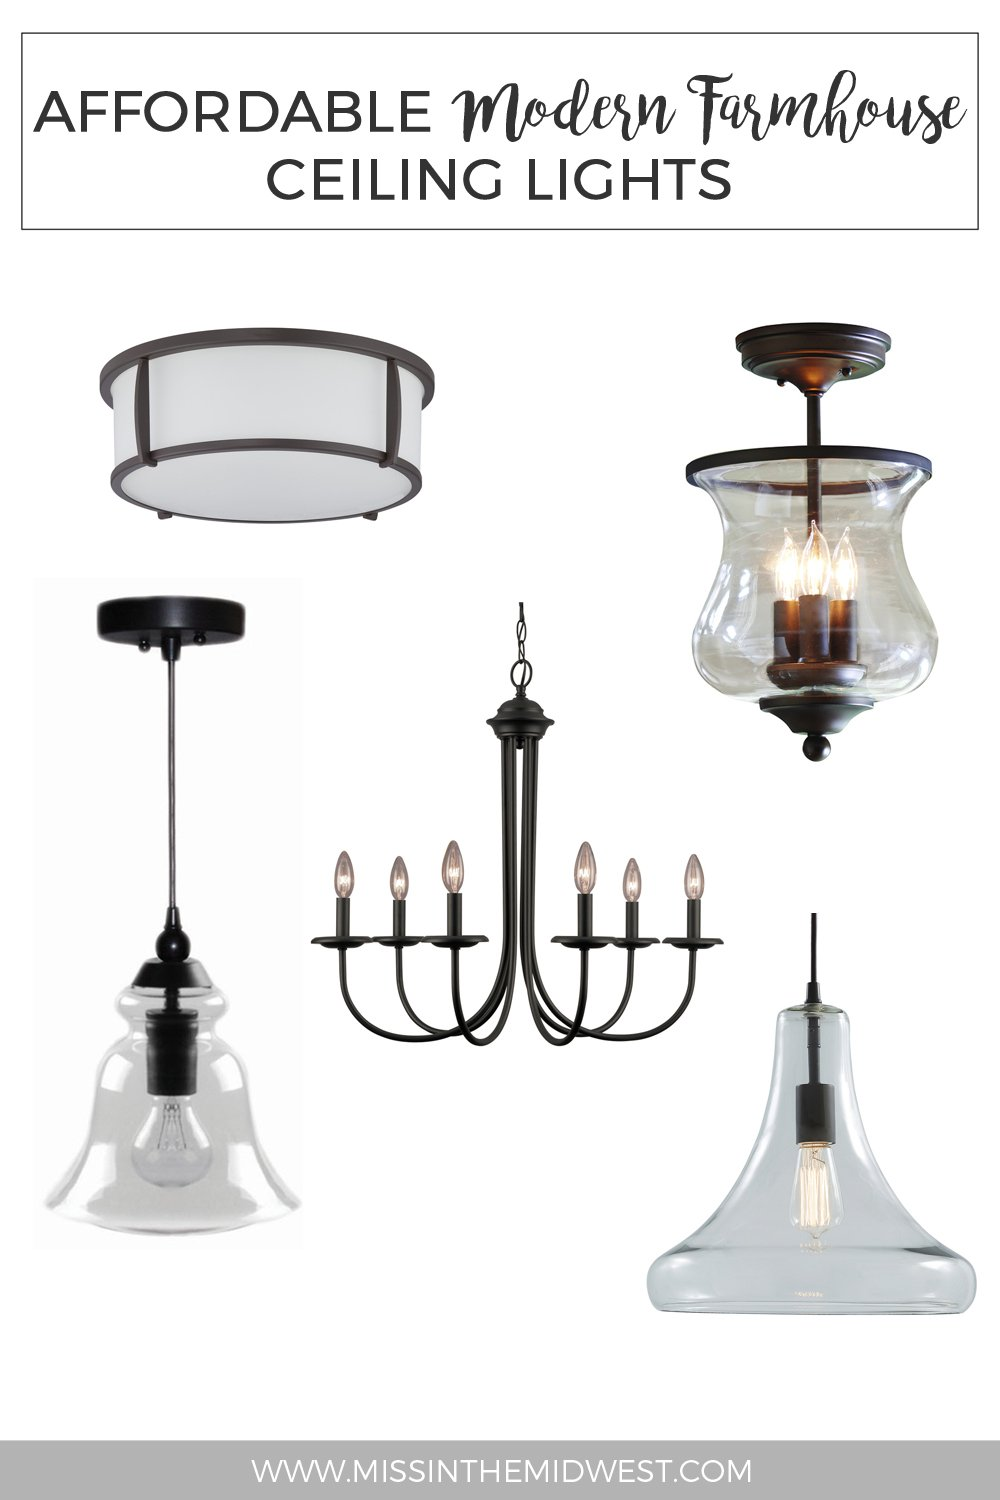 Affordable modern farmhouse ceiling lights from lowes what karly said aloadofball Images